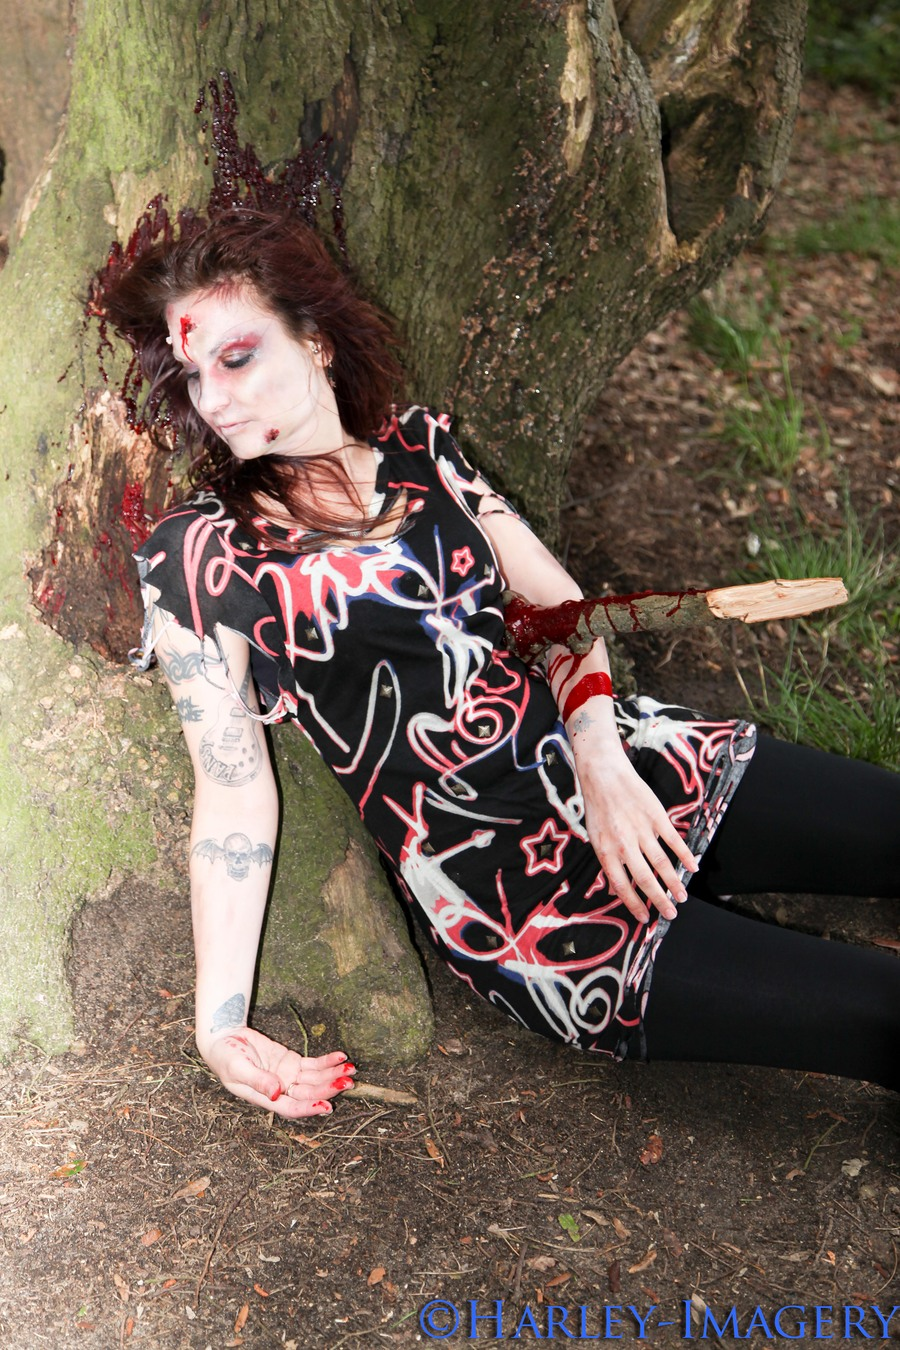 zombie death / Photography by Harley / Uploaded 14th July 2012 @ 07:03 PM